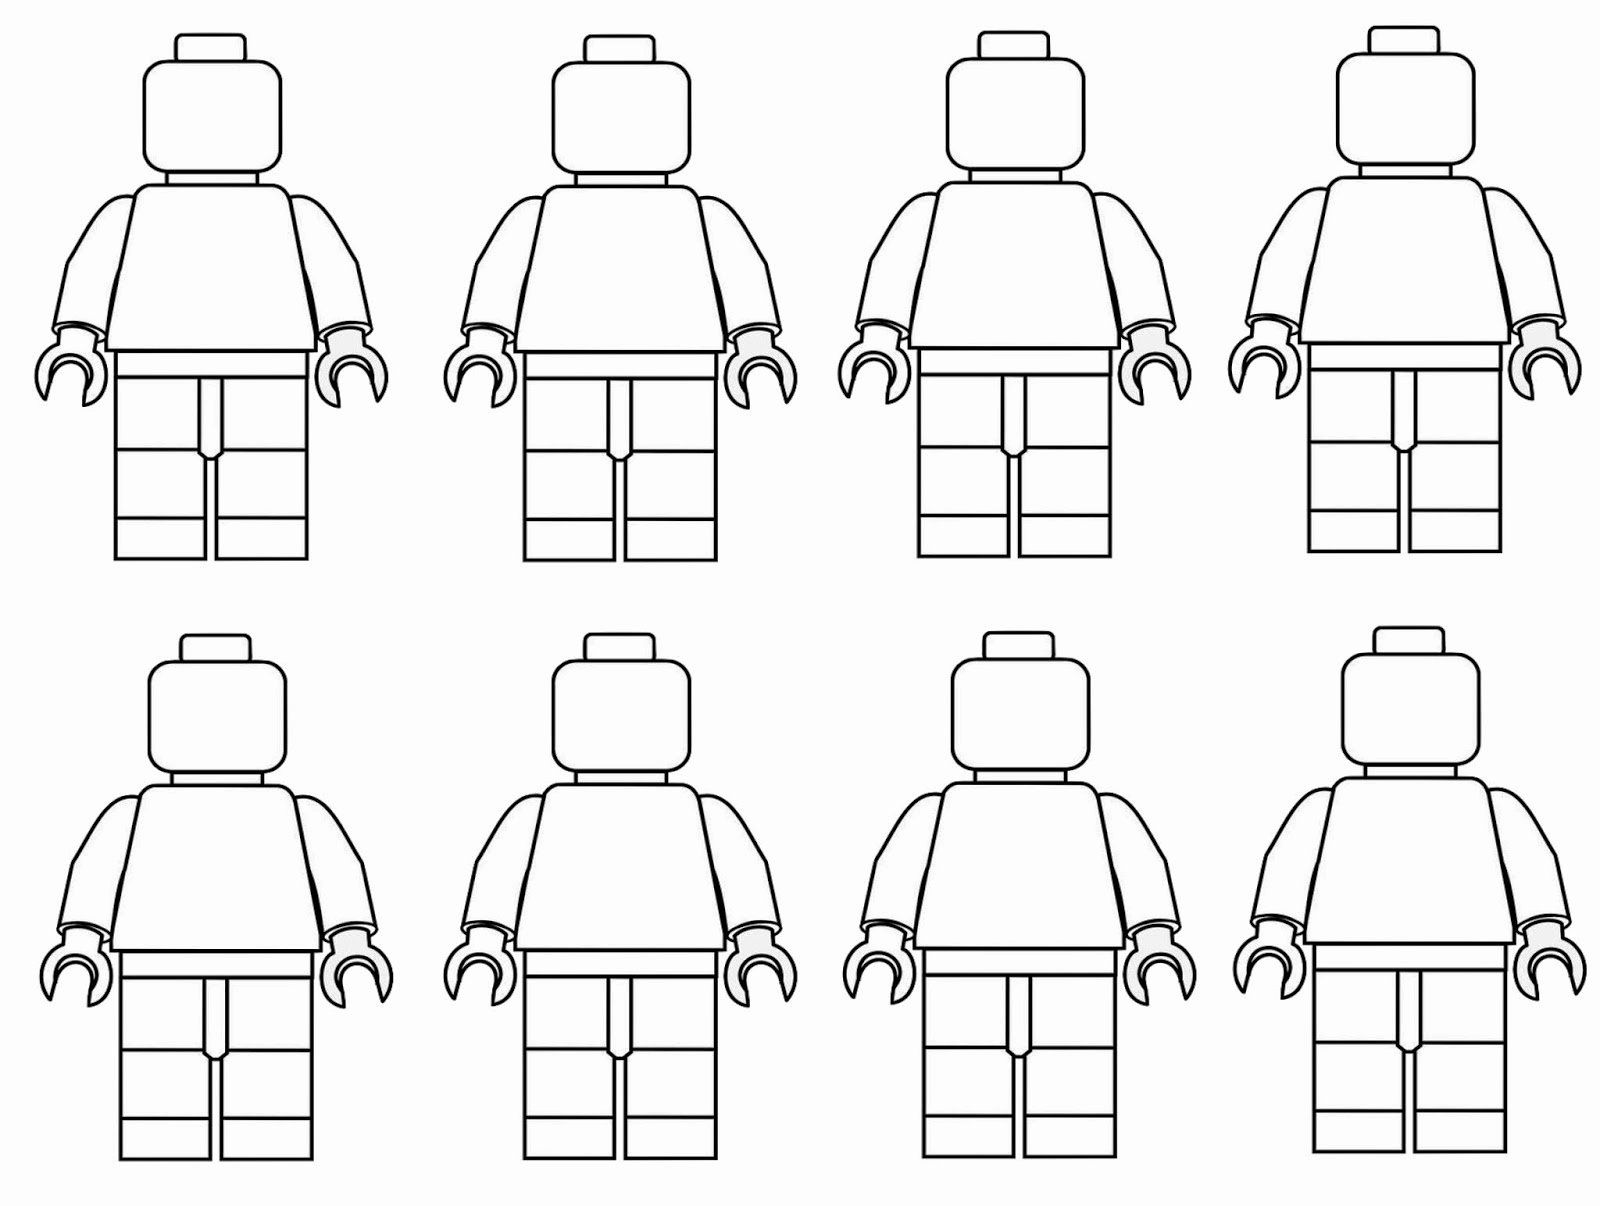 Lego Man Coloring Page Beautiful Stikbot Coloring Page Pages Sketch Coloring Page In 2020 Lego Coloring Pages Lego Coloring Lego Man